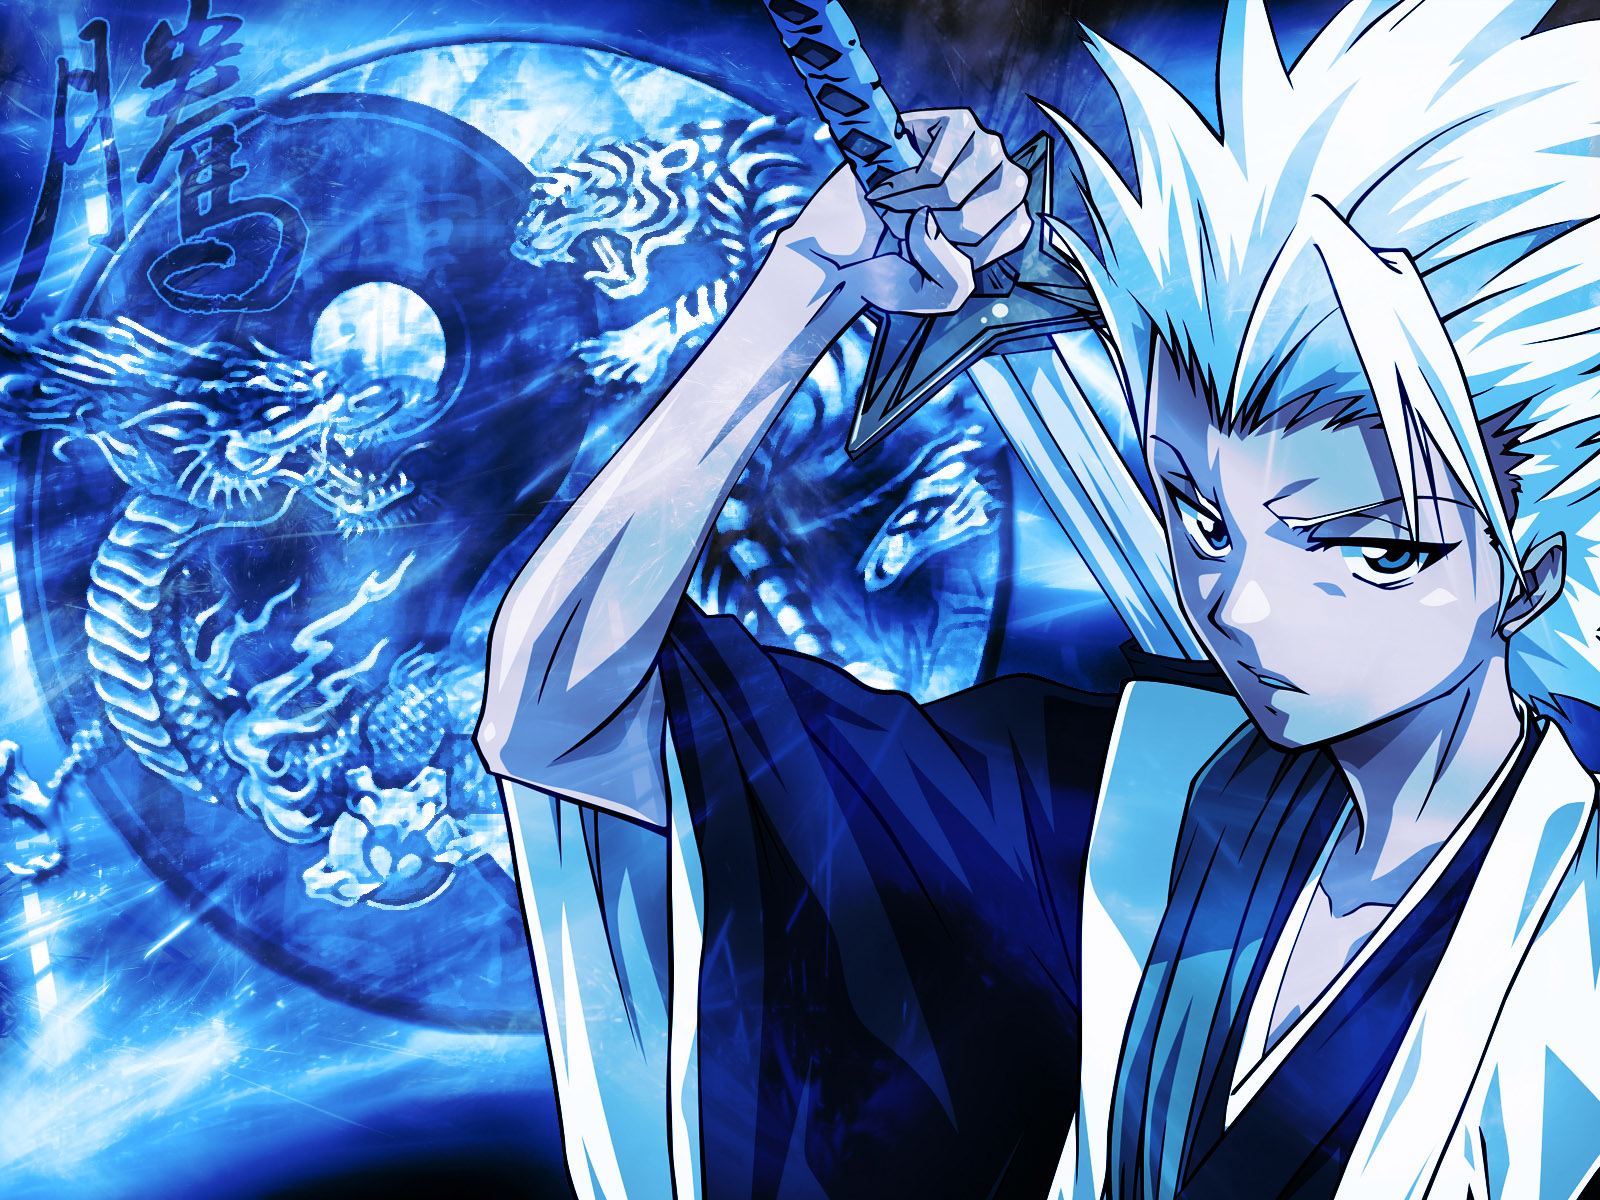 Japan Cartoon Bleach Wallpaper